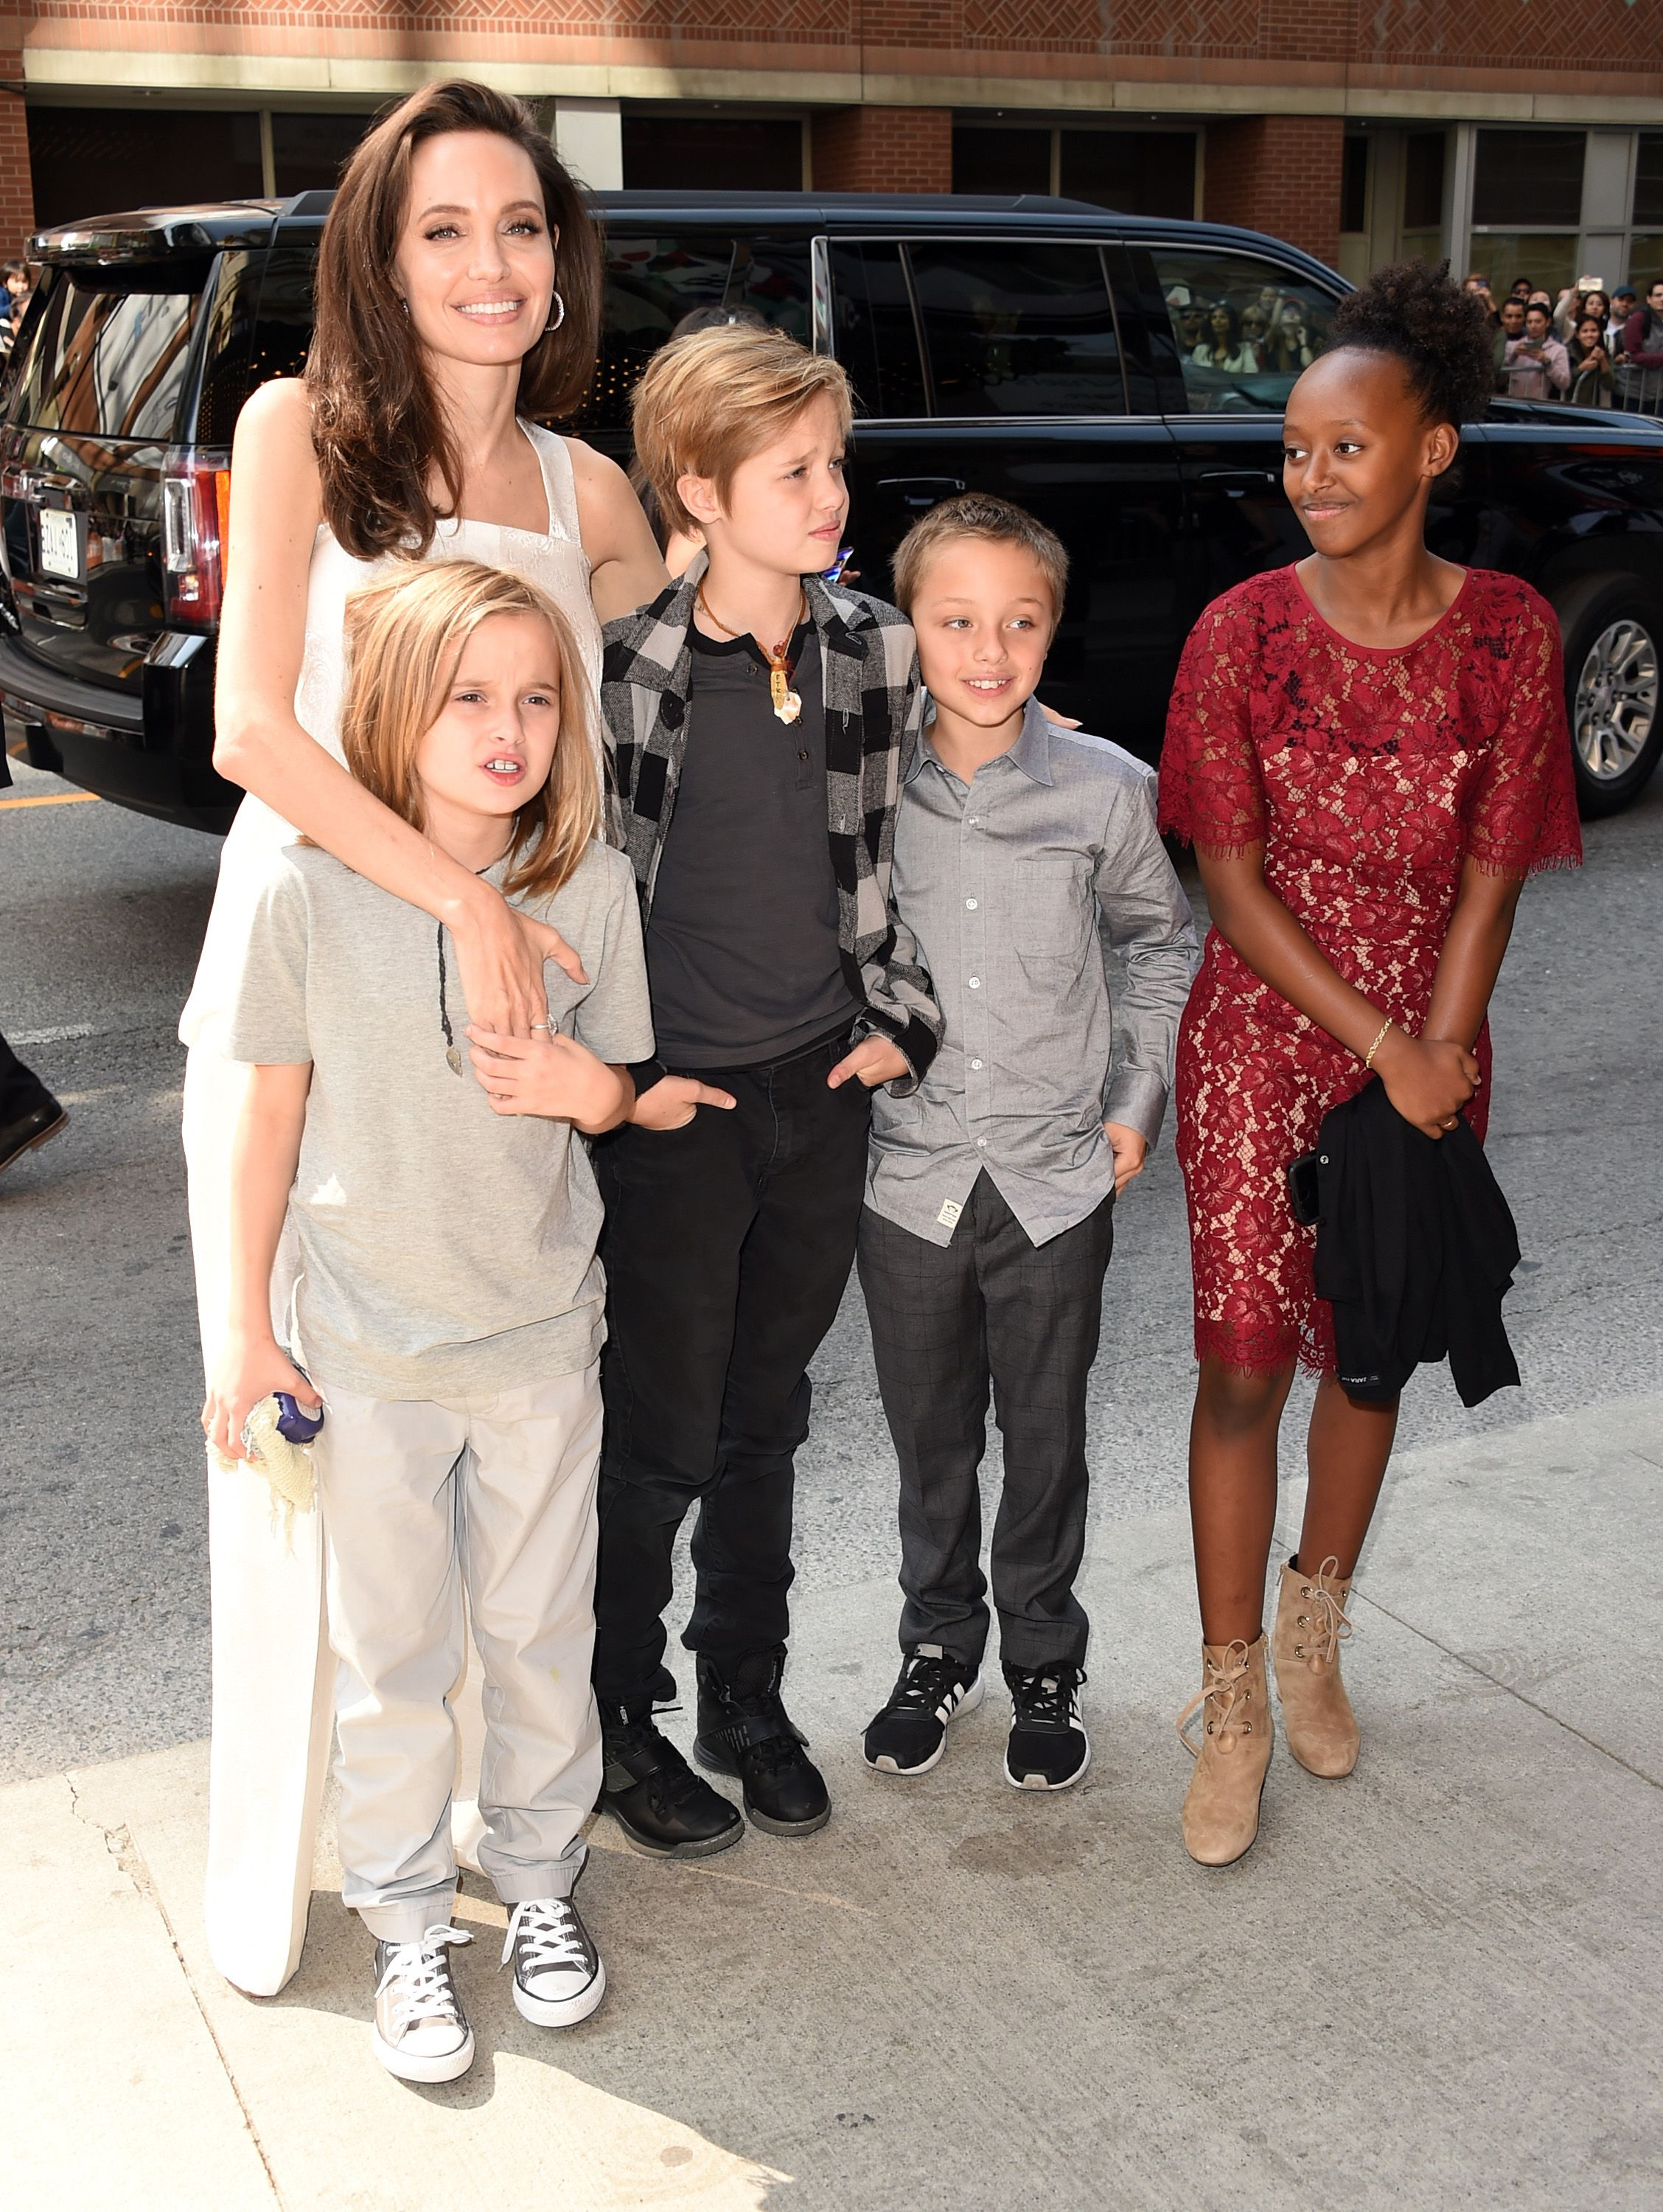 Here is how grown-up children Jolie and Pitt look: the genes of the most beautiful couple in Hollywood are in